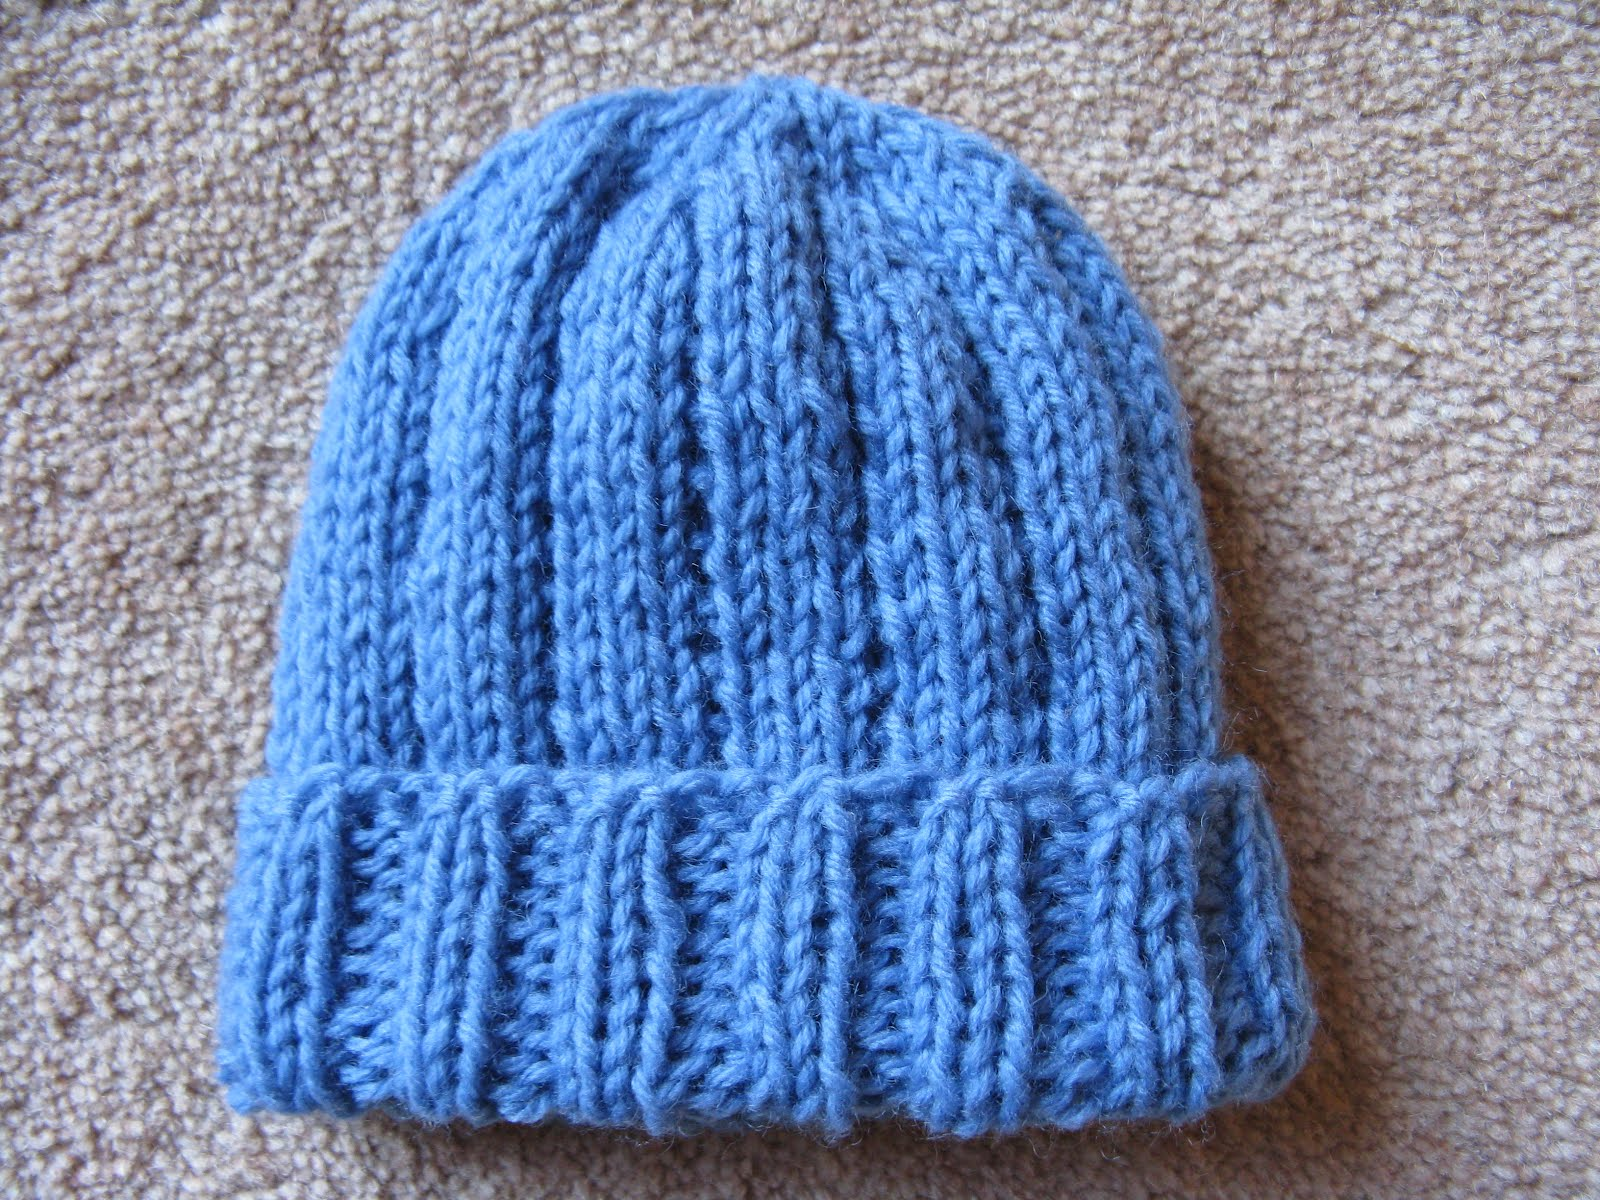 Easy Preemie Hat Knitting Pattern : Modelwidow: Little Boy Blue Preemie Hat